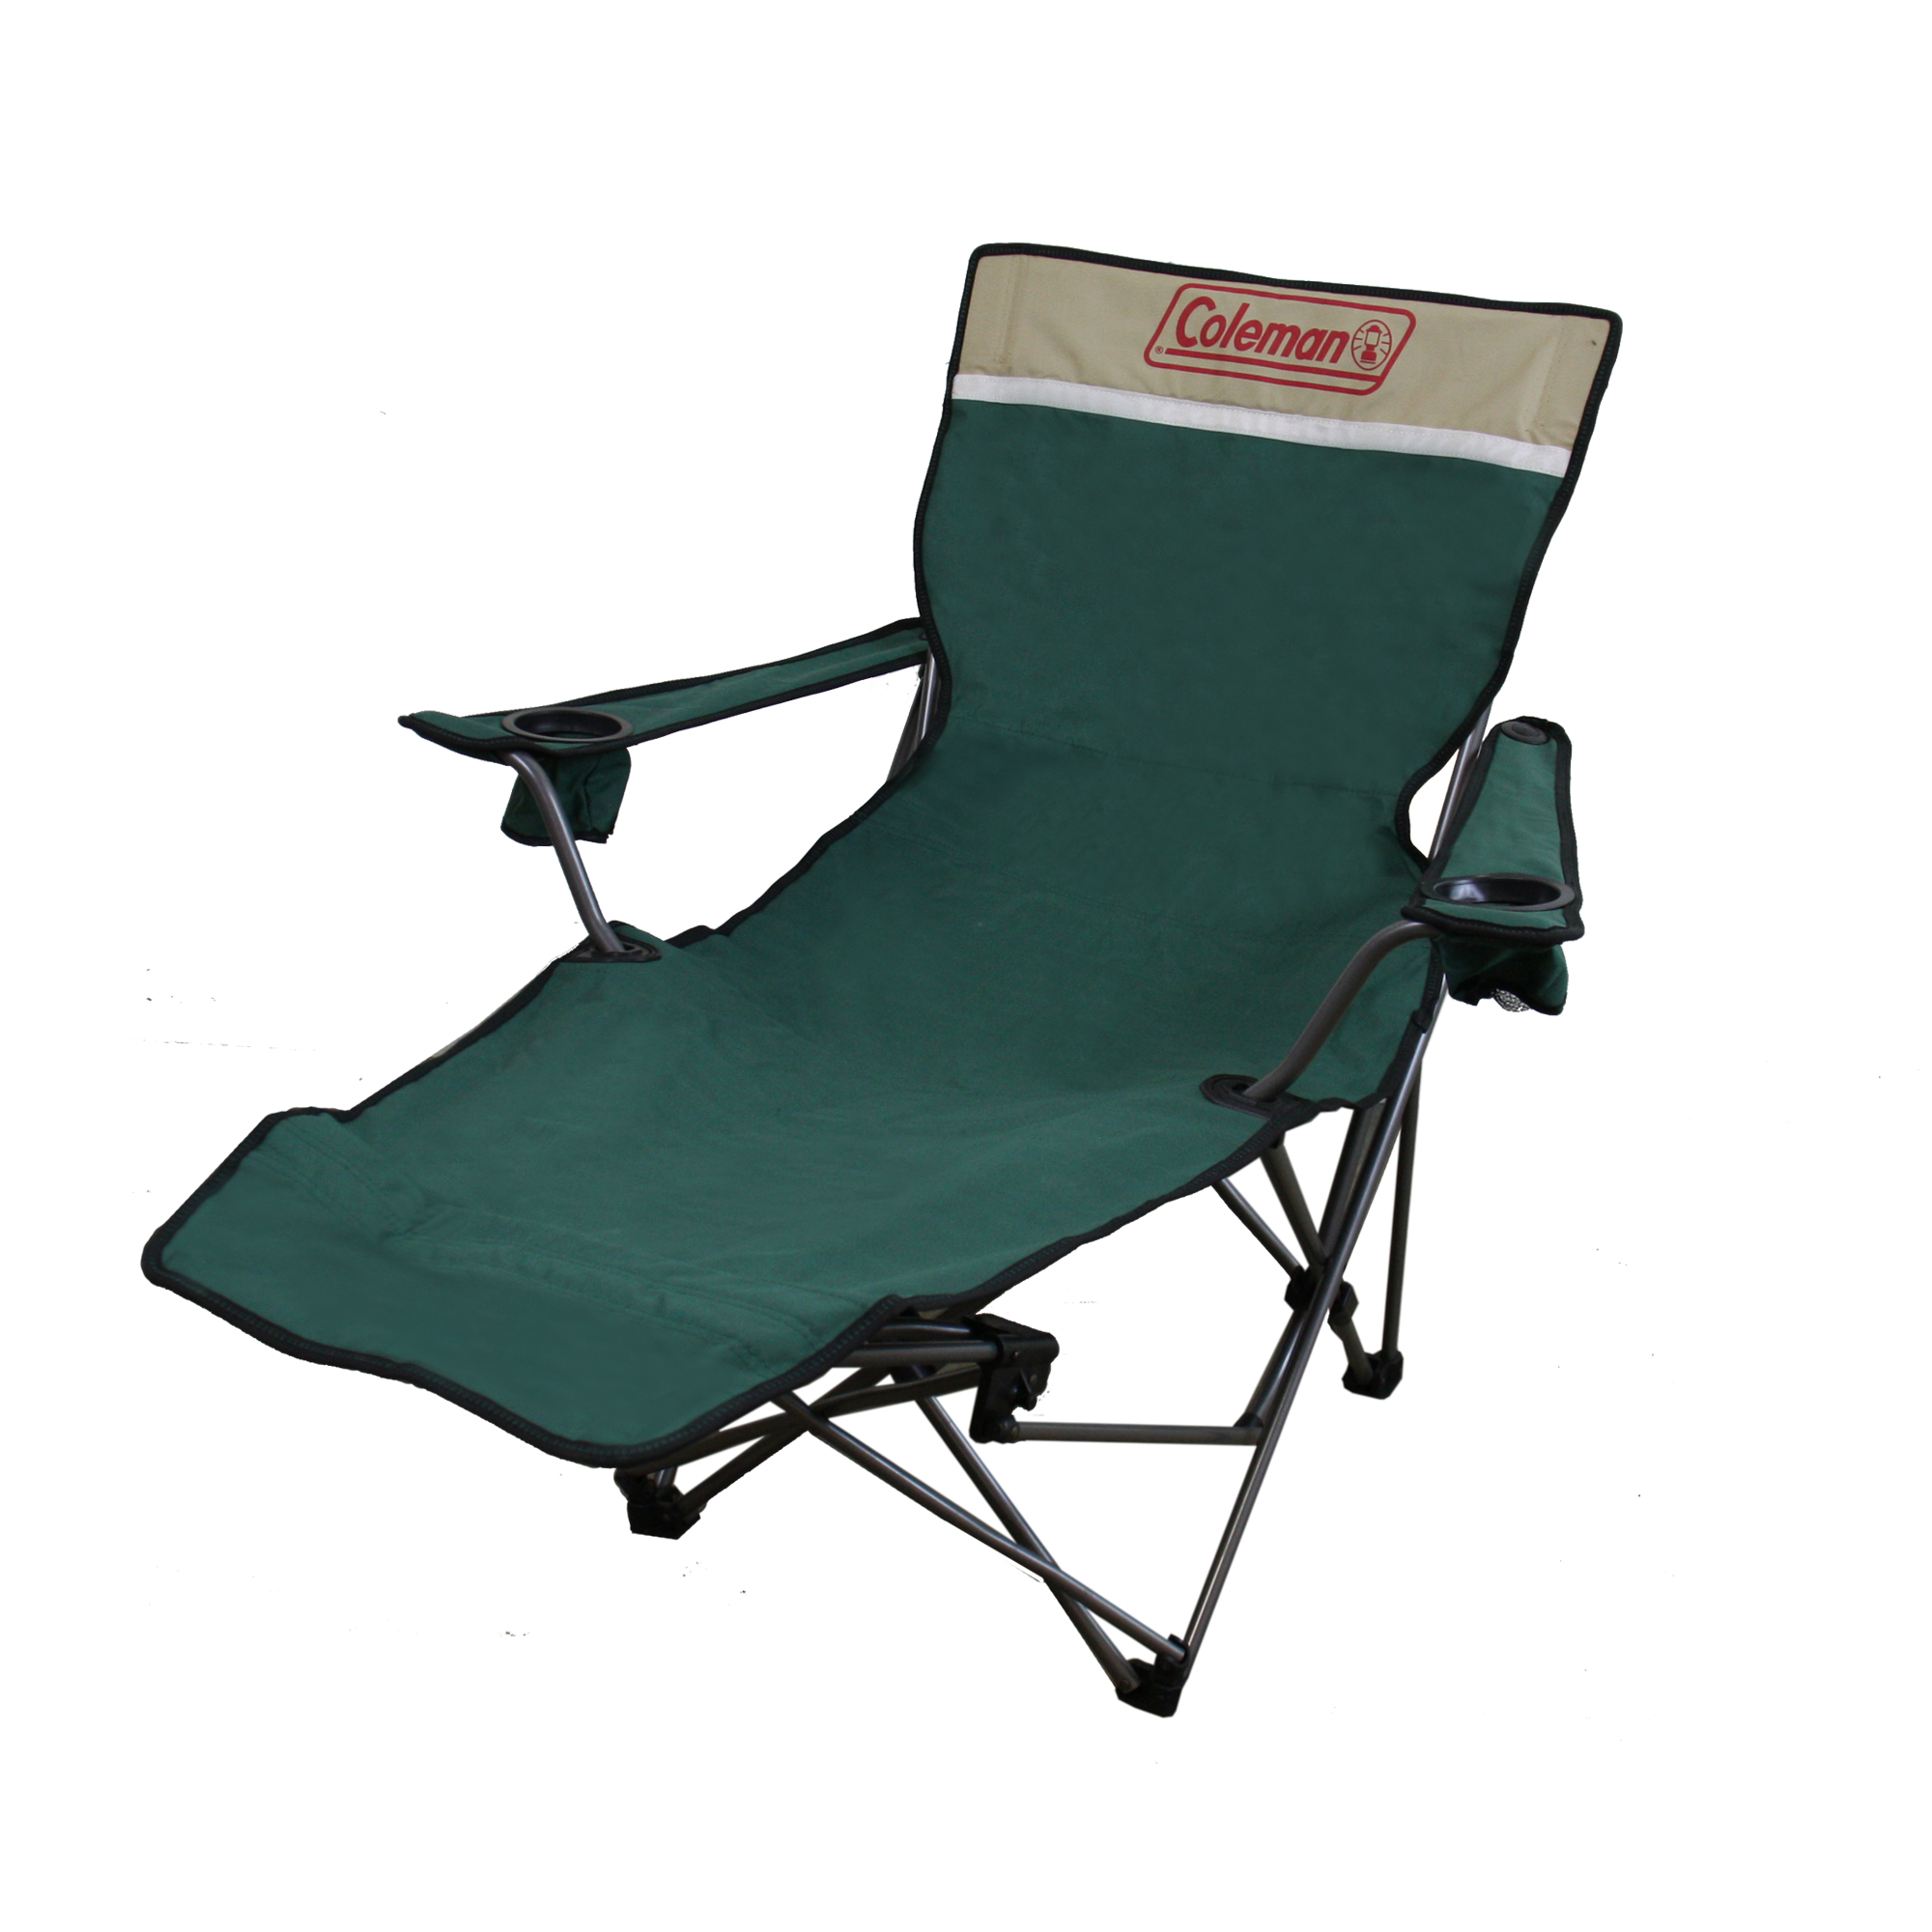 Portable Recliner Chair Ore International 39 Inch Portable Lounge Reclining Green